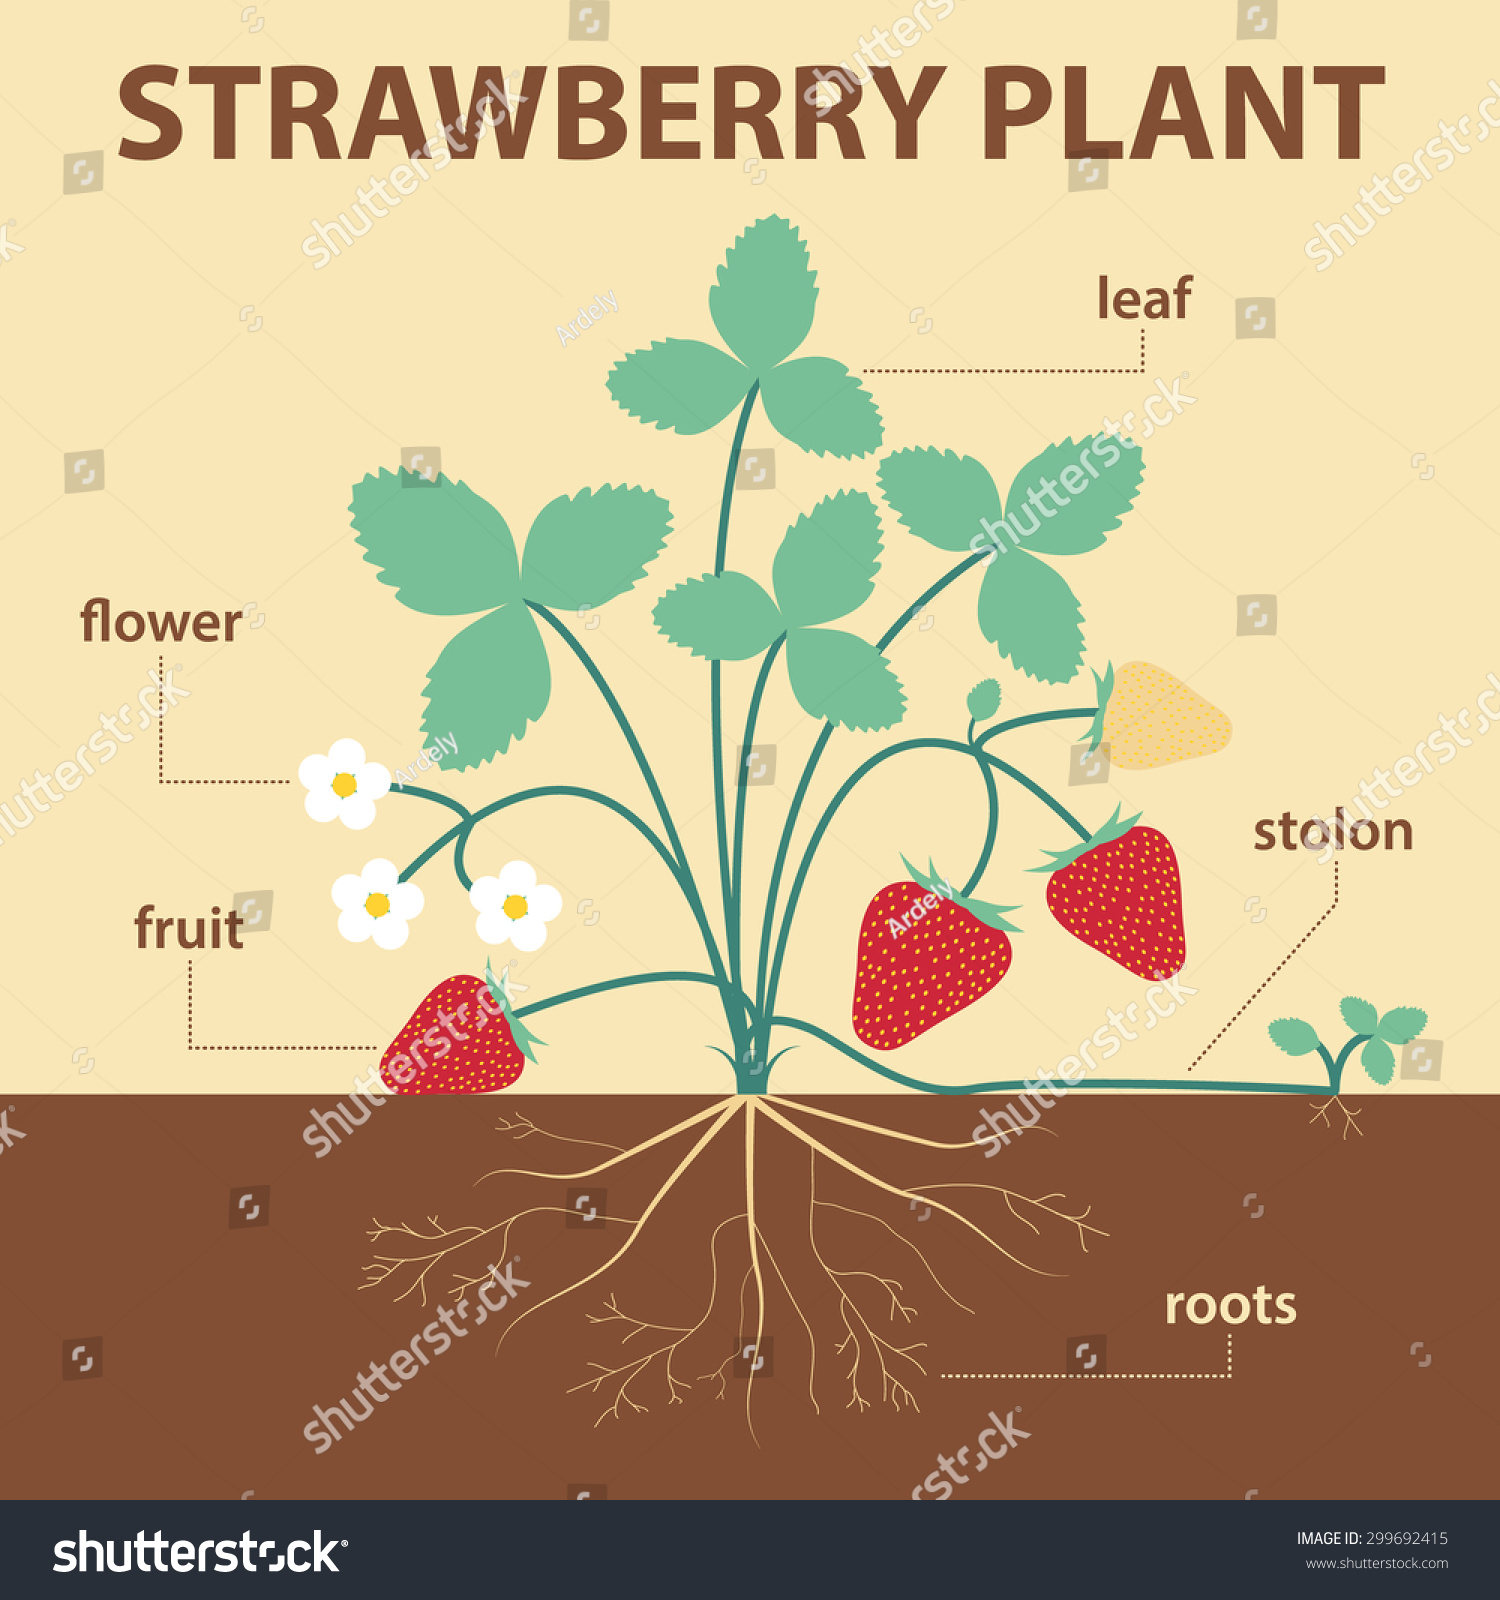 Vector Illustration Showing Parts Of Strawberry Whole